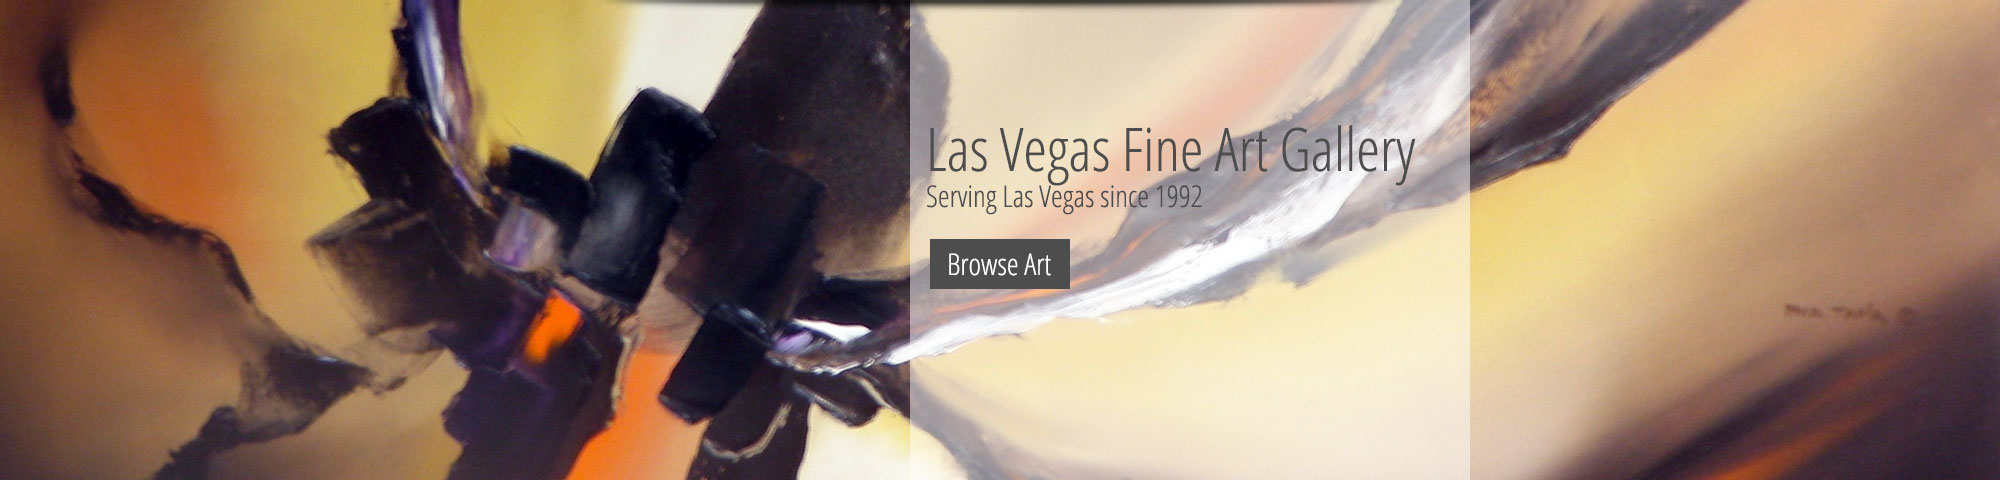 Browse Fine Art in Las Vegas